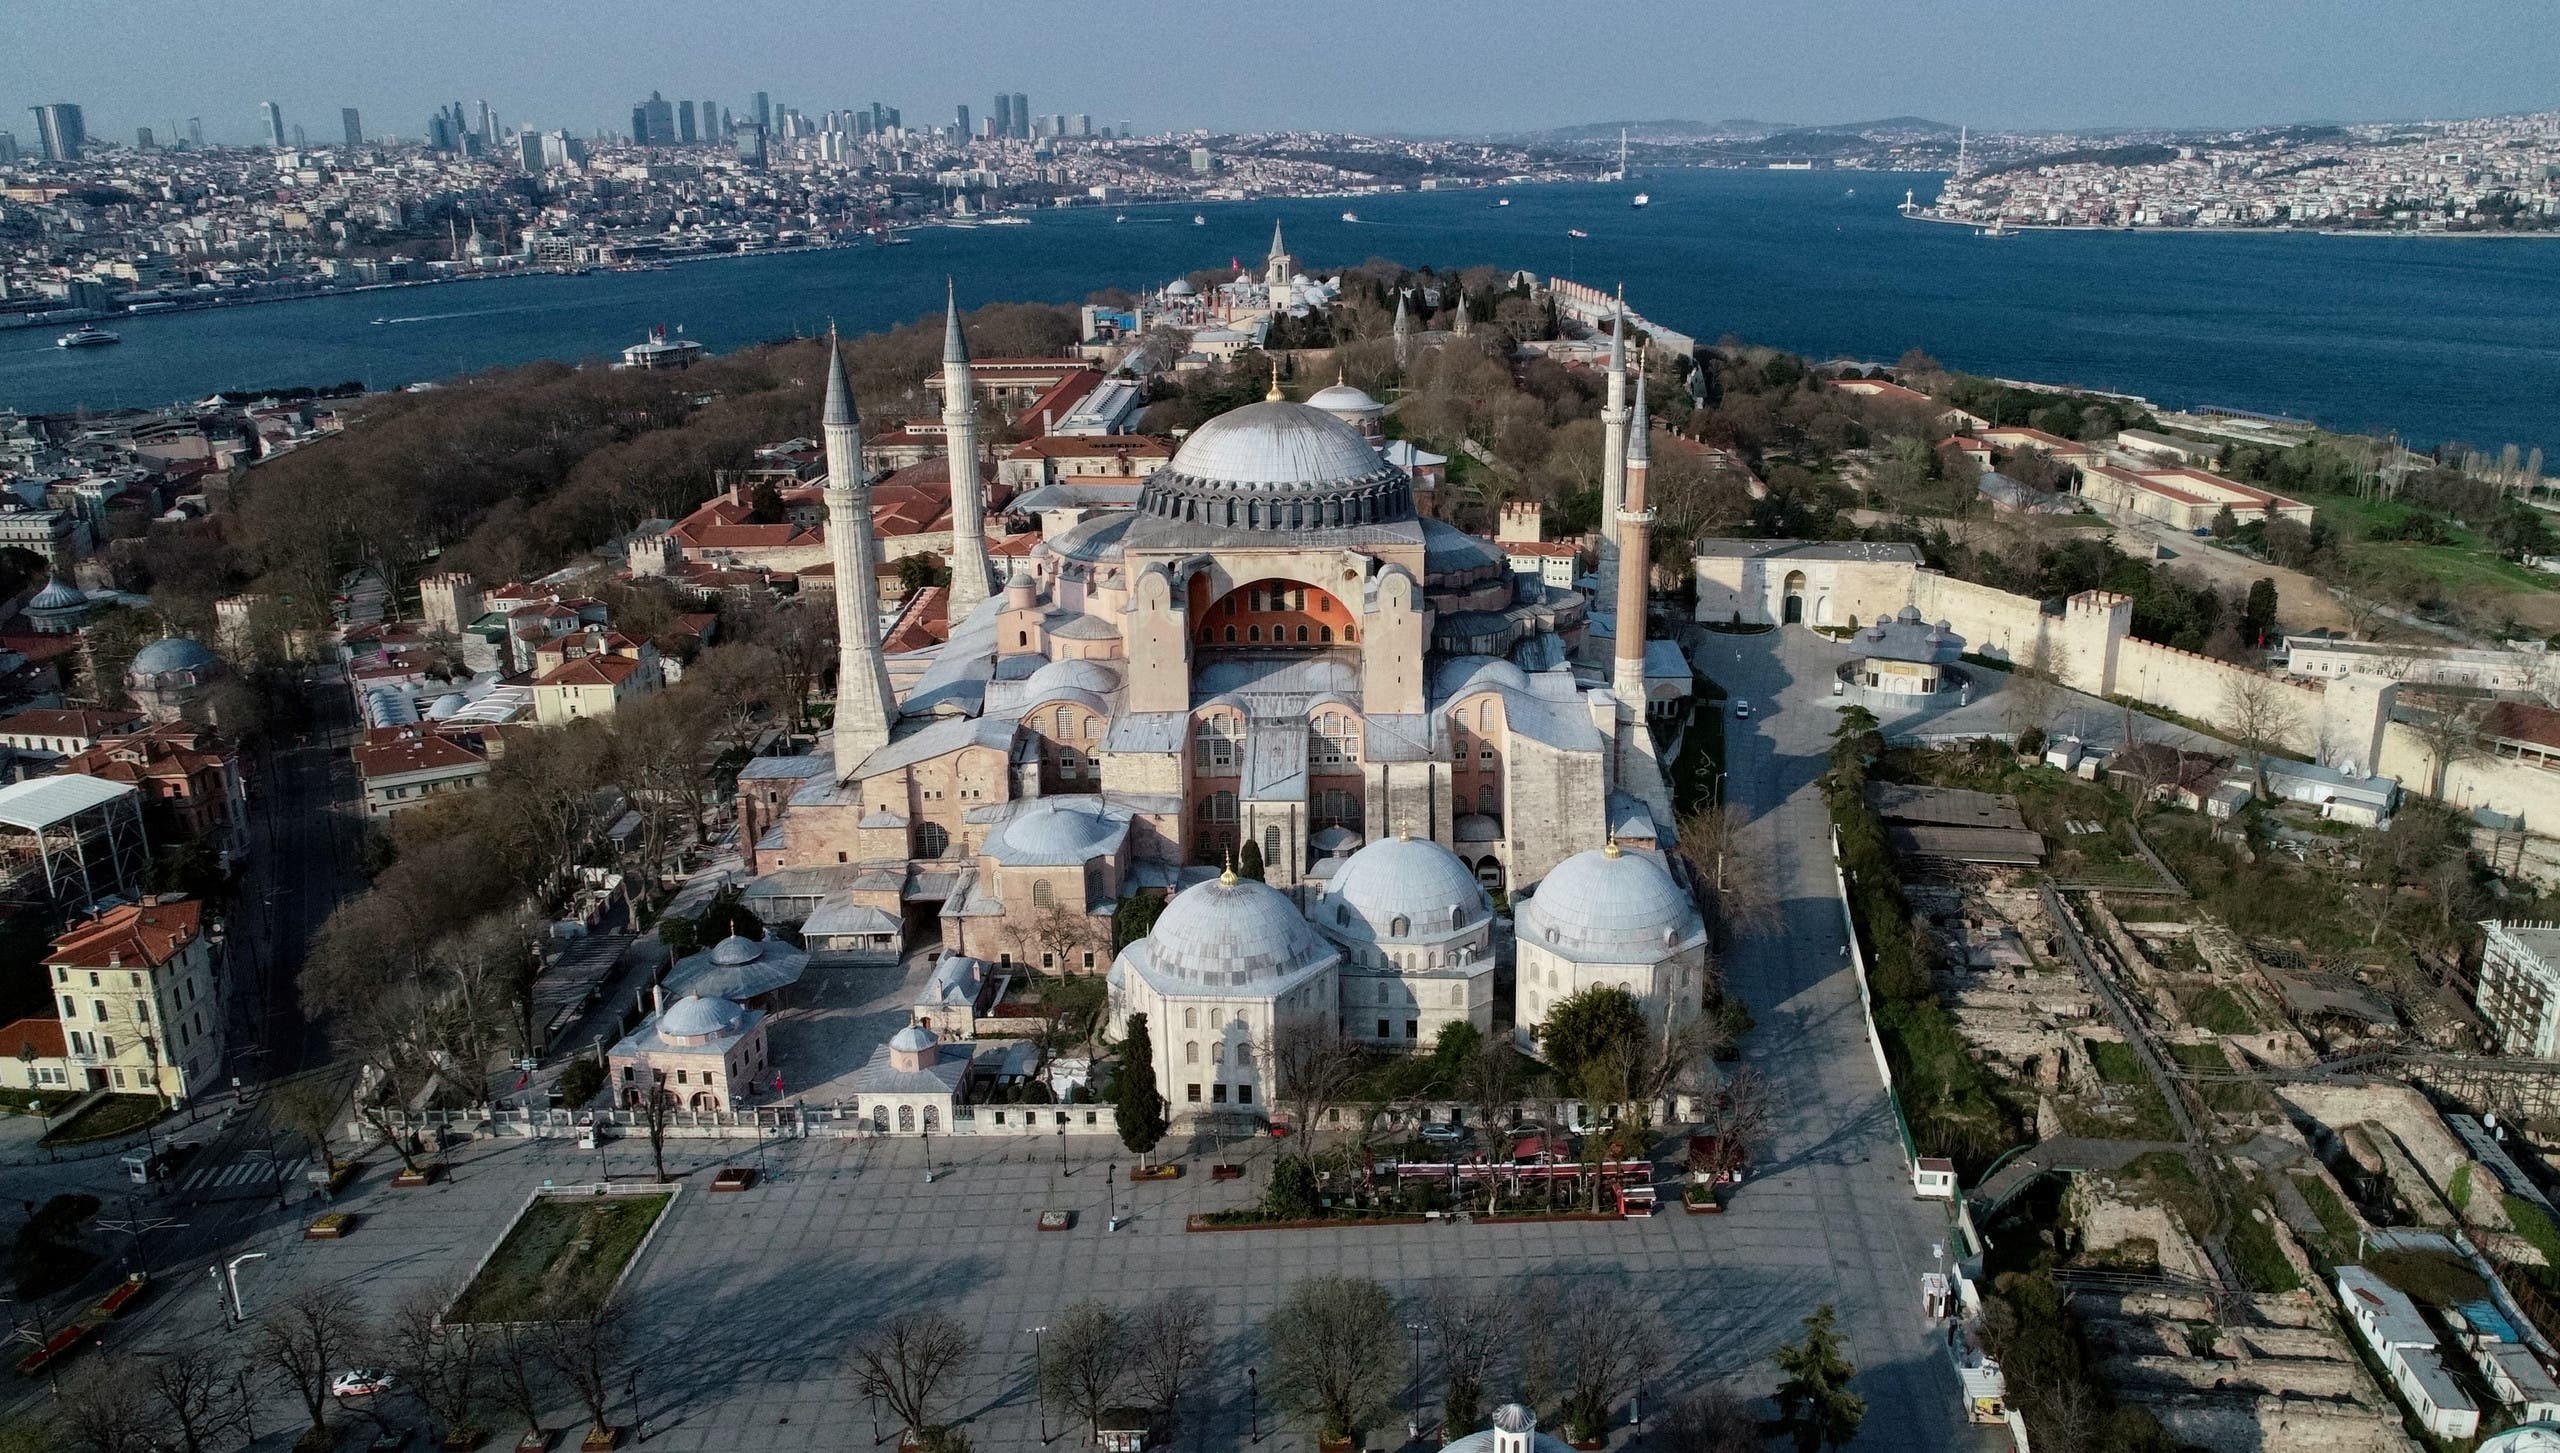 An aerial view of the Byzantine-era monument of Hagia Sophia in Istanbul on April 11, 2020. (AFP)